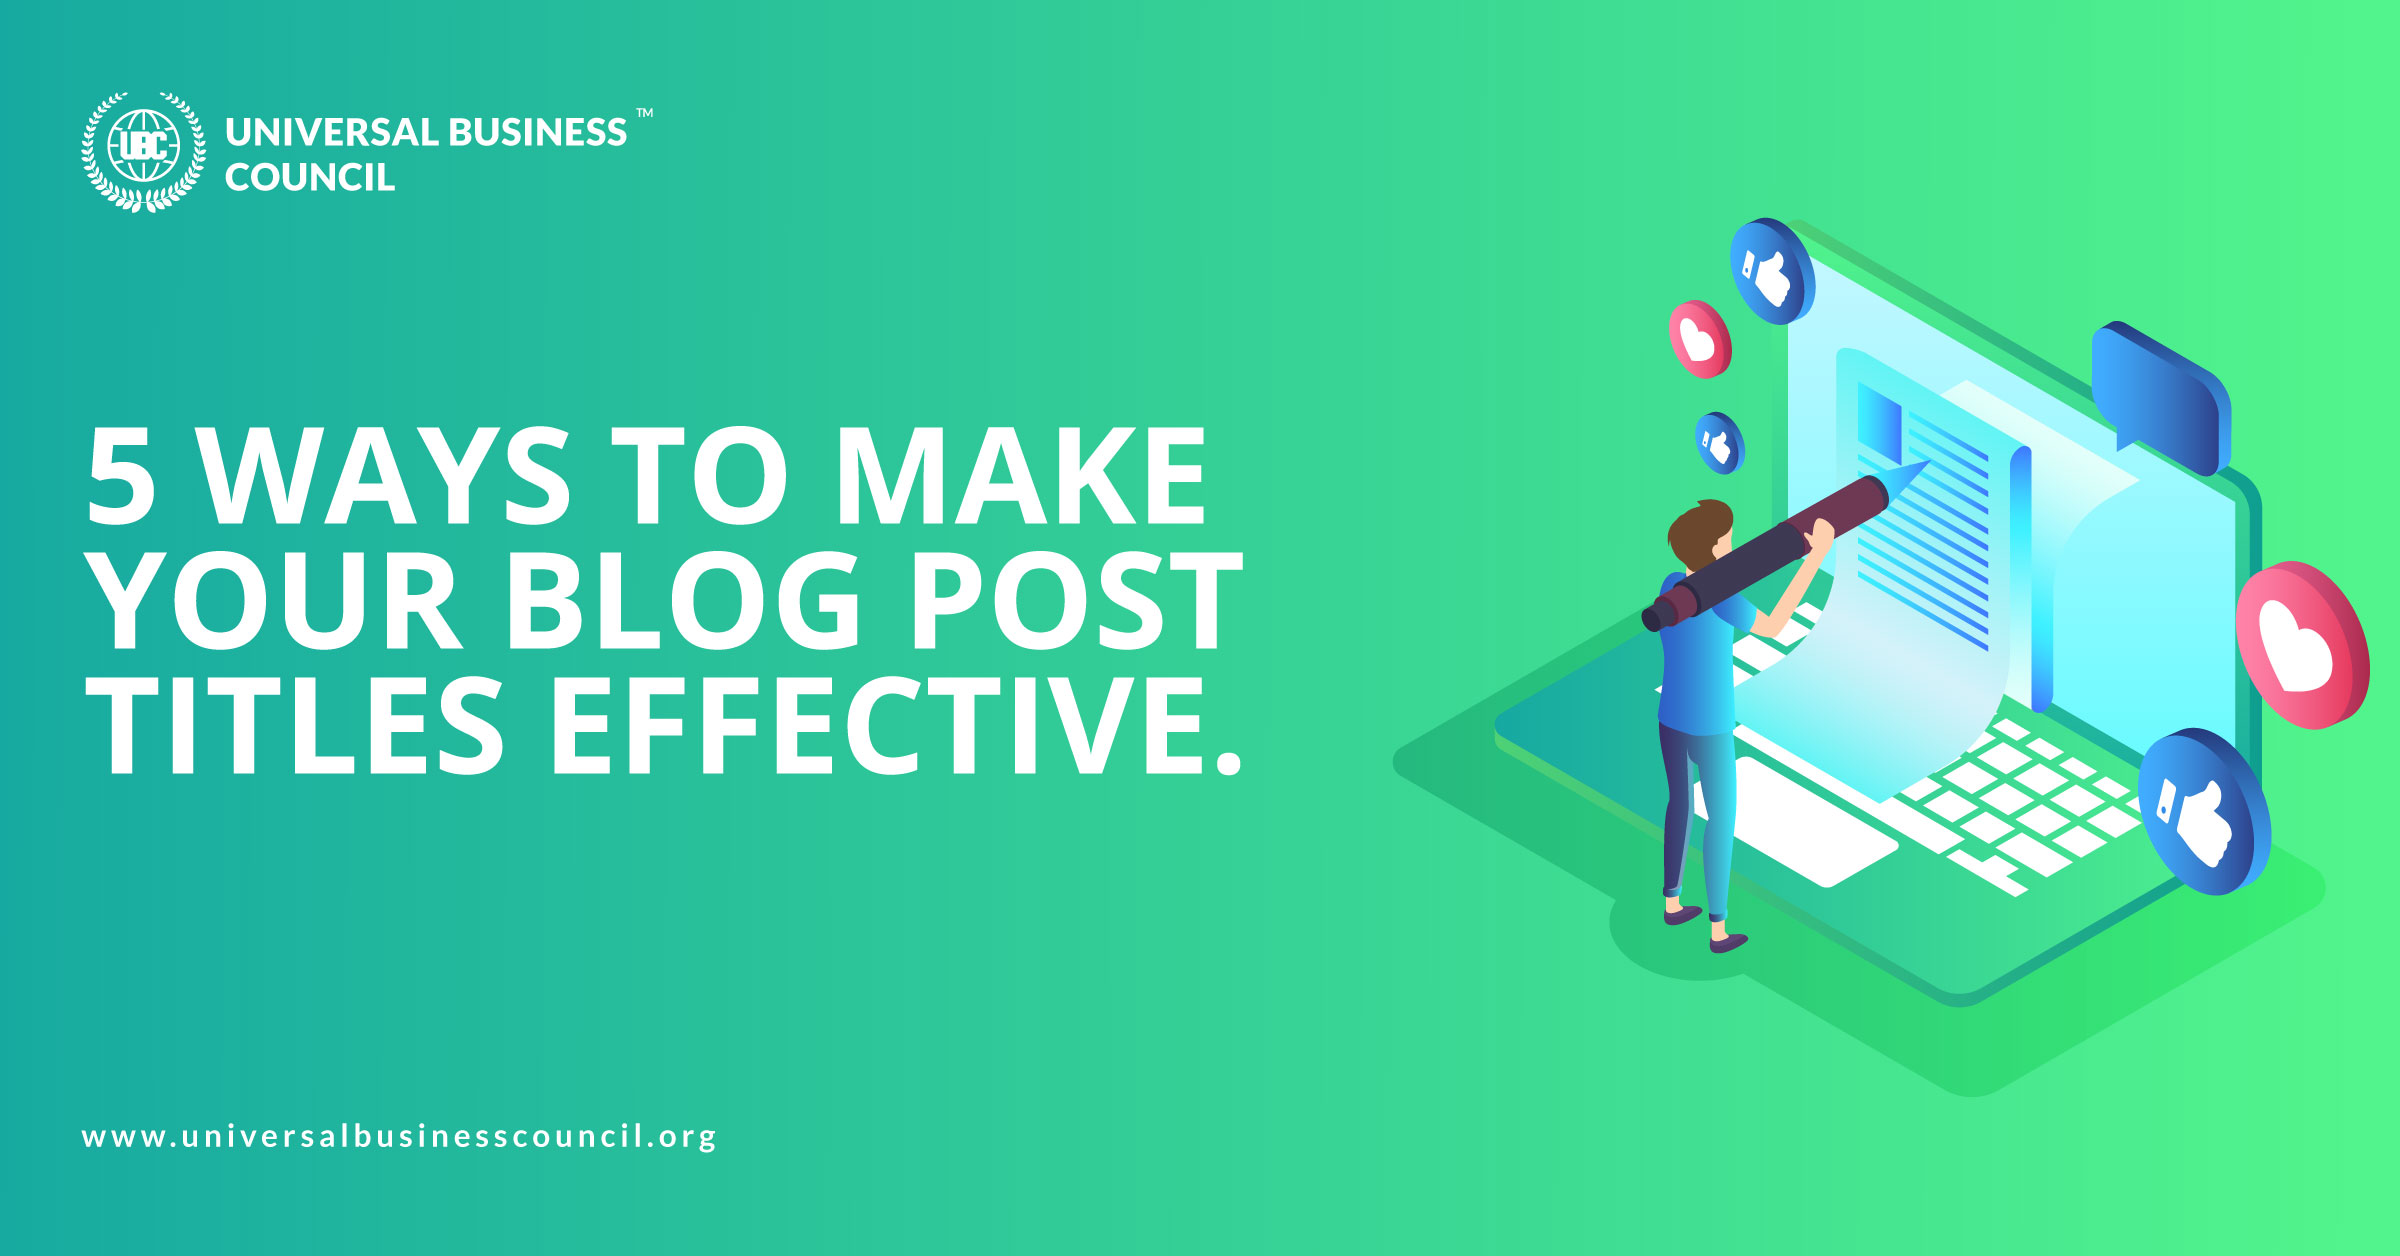 5-Ways-to-Make-Your-Blog-Post-Titles-Effective